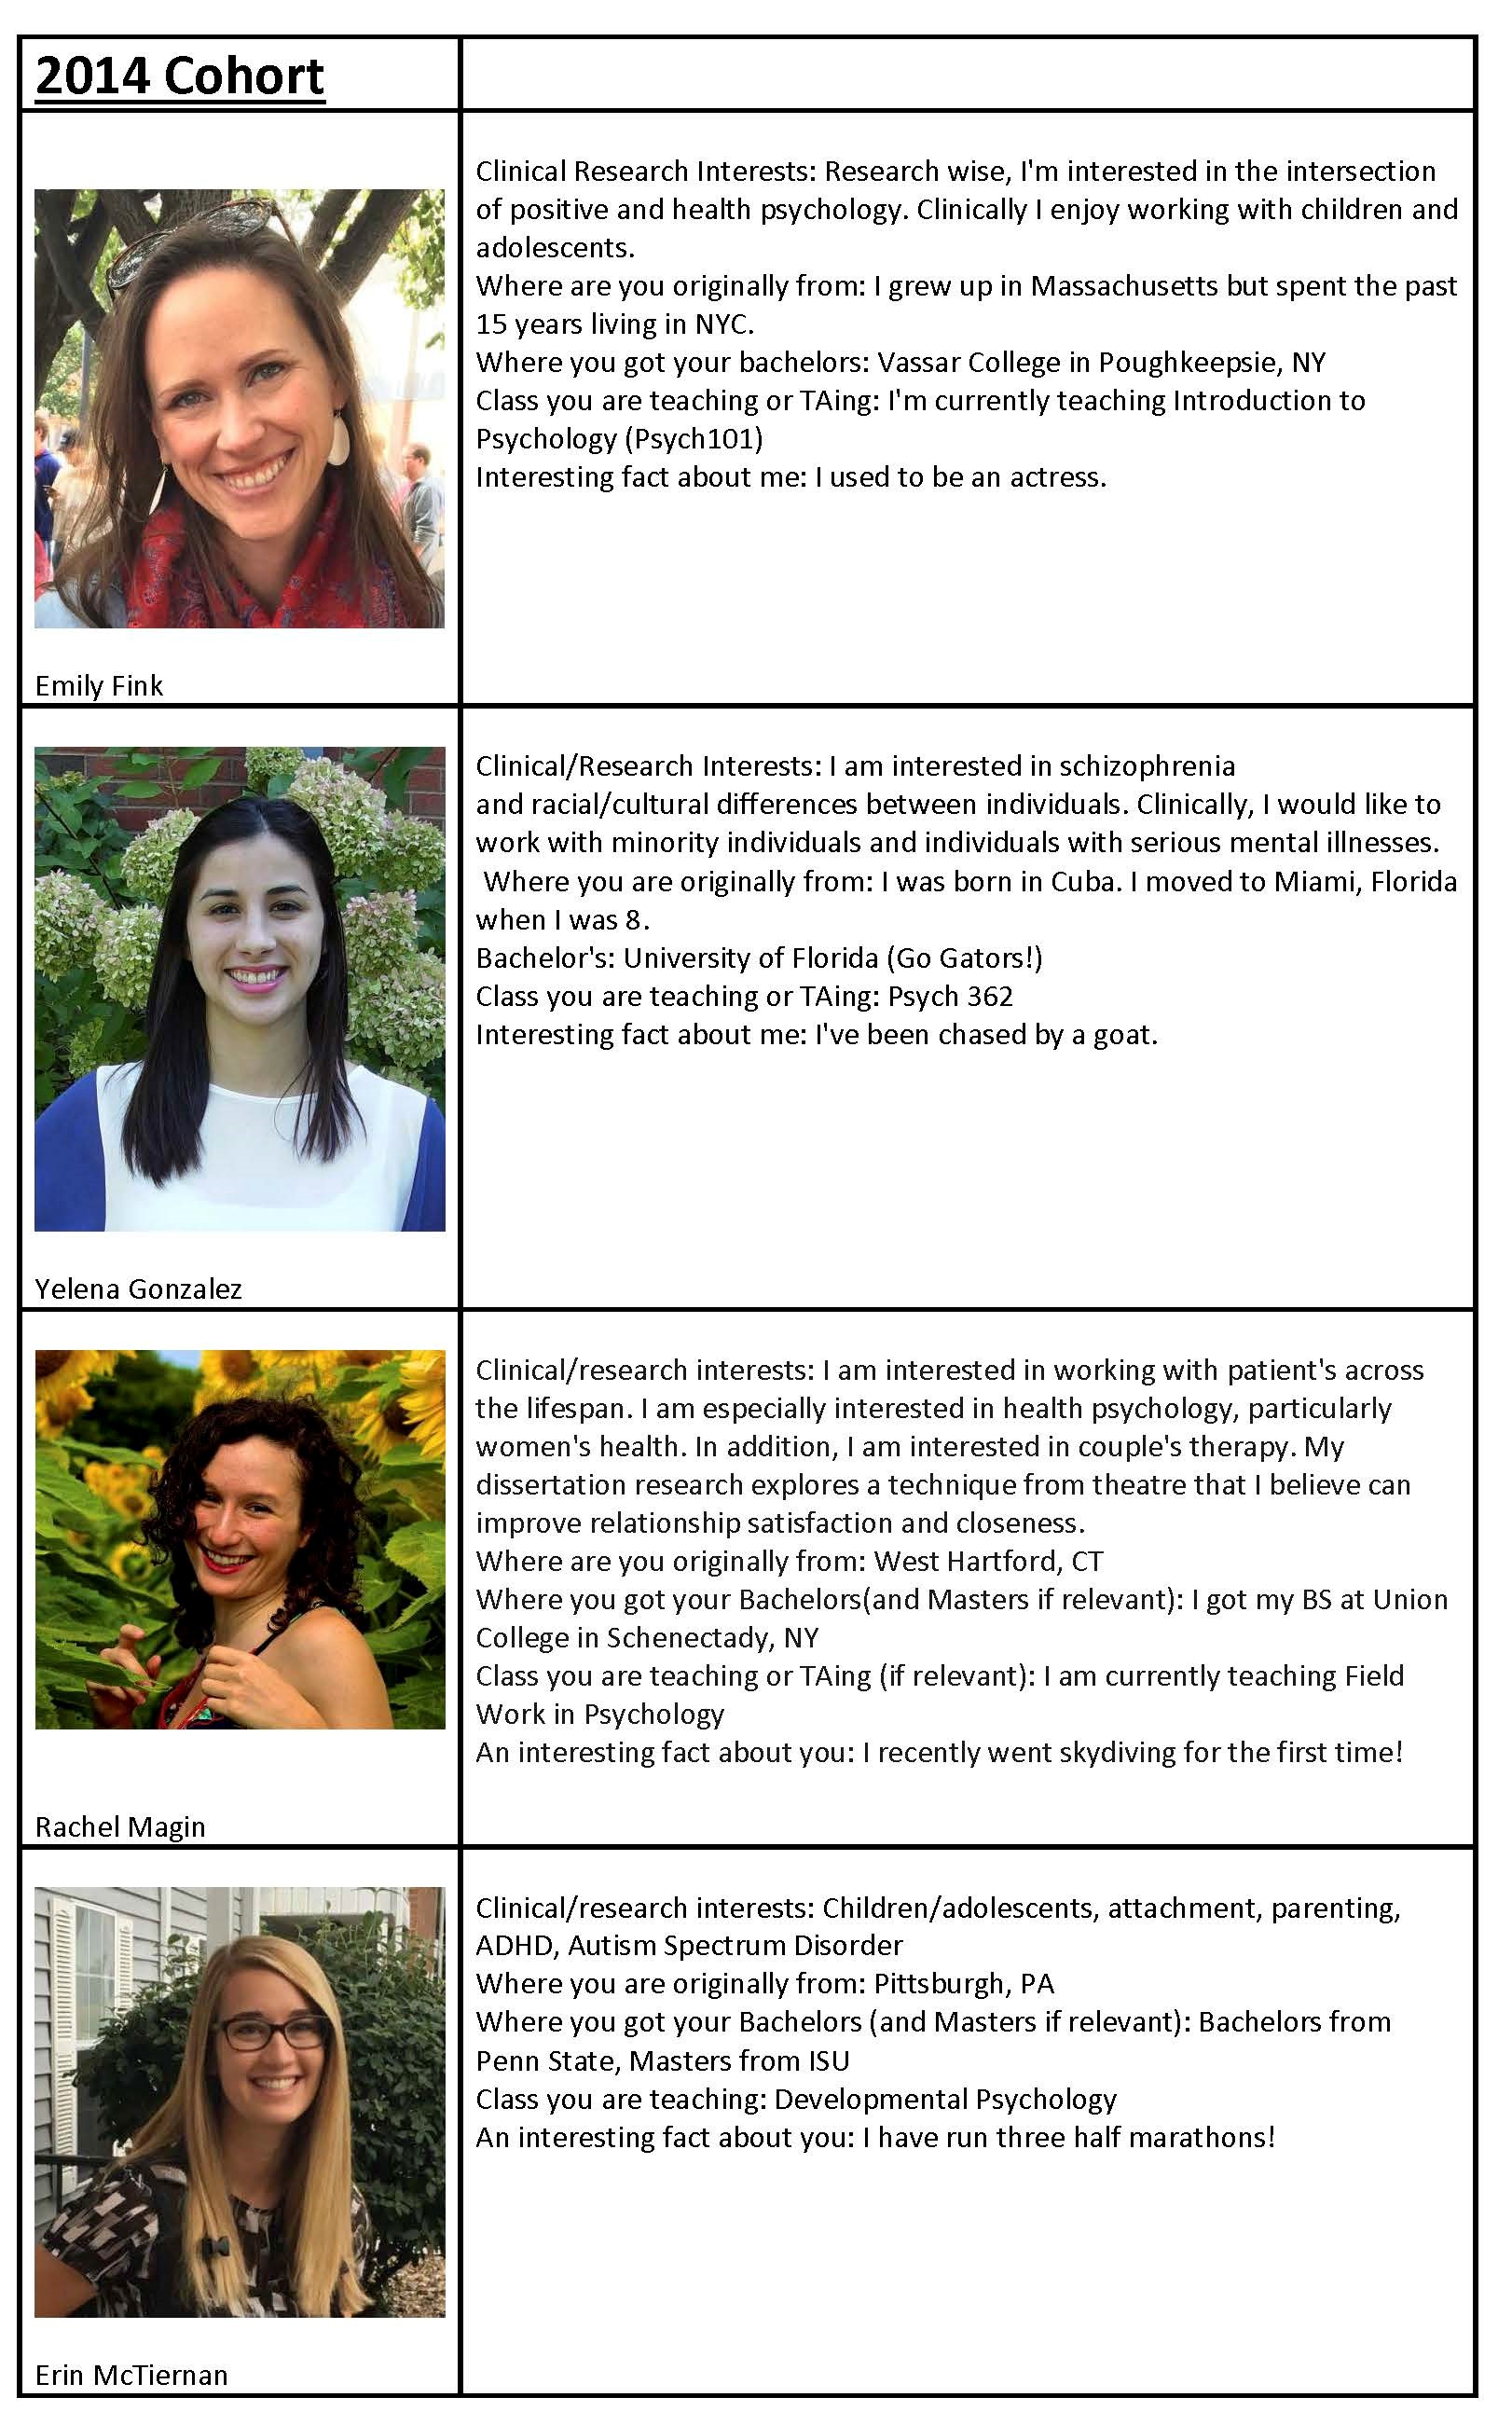 2014 Cohort 4th Years_Page_1